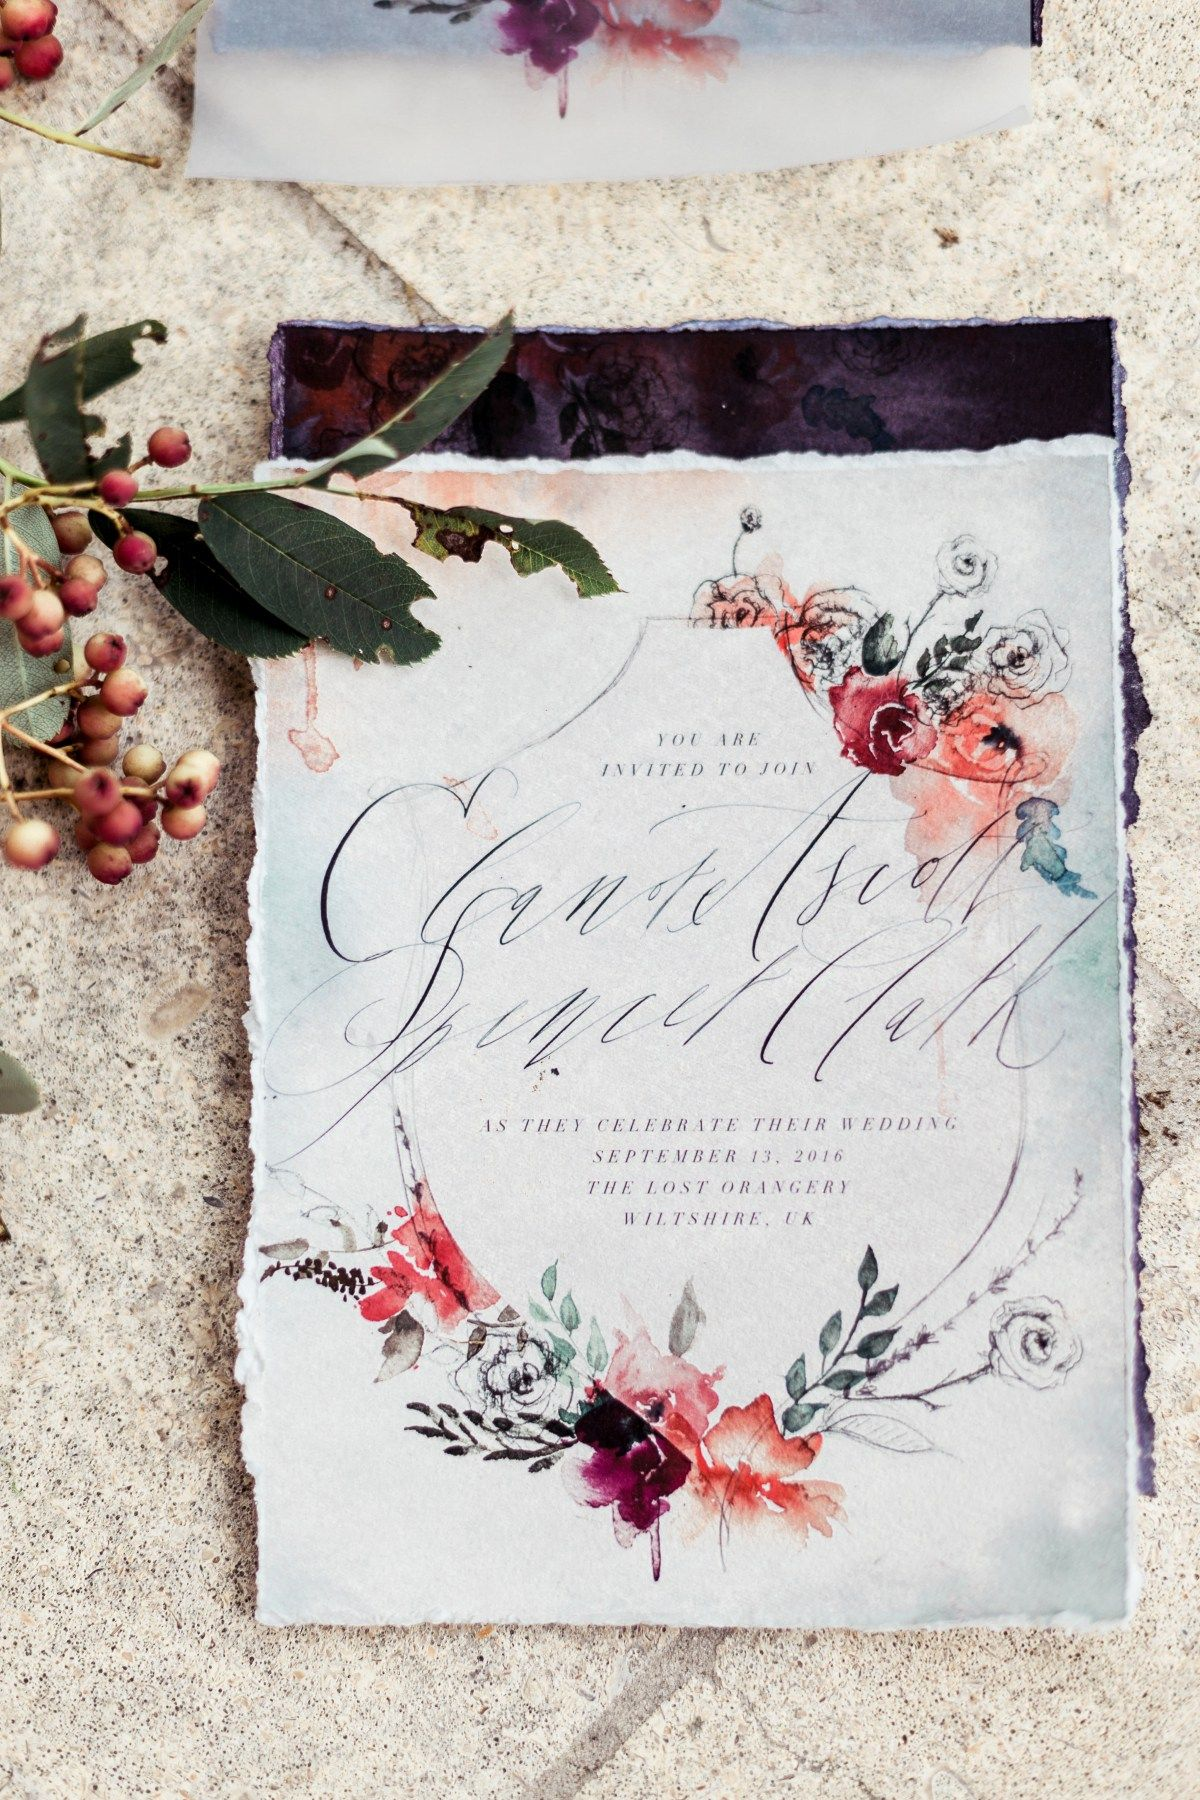 south african traditional wedding invitations samples%0A Floral wedding stationery inspiration from a romantic fine art shoot   Photography by Gyan Gurung More